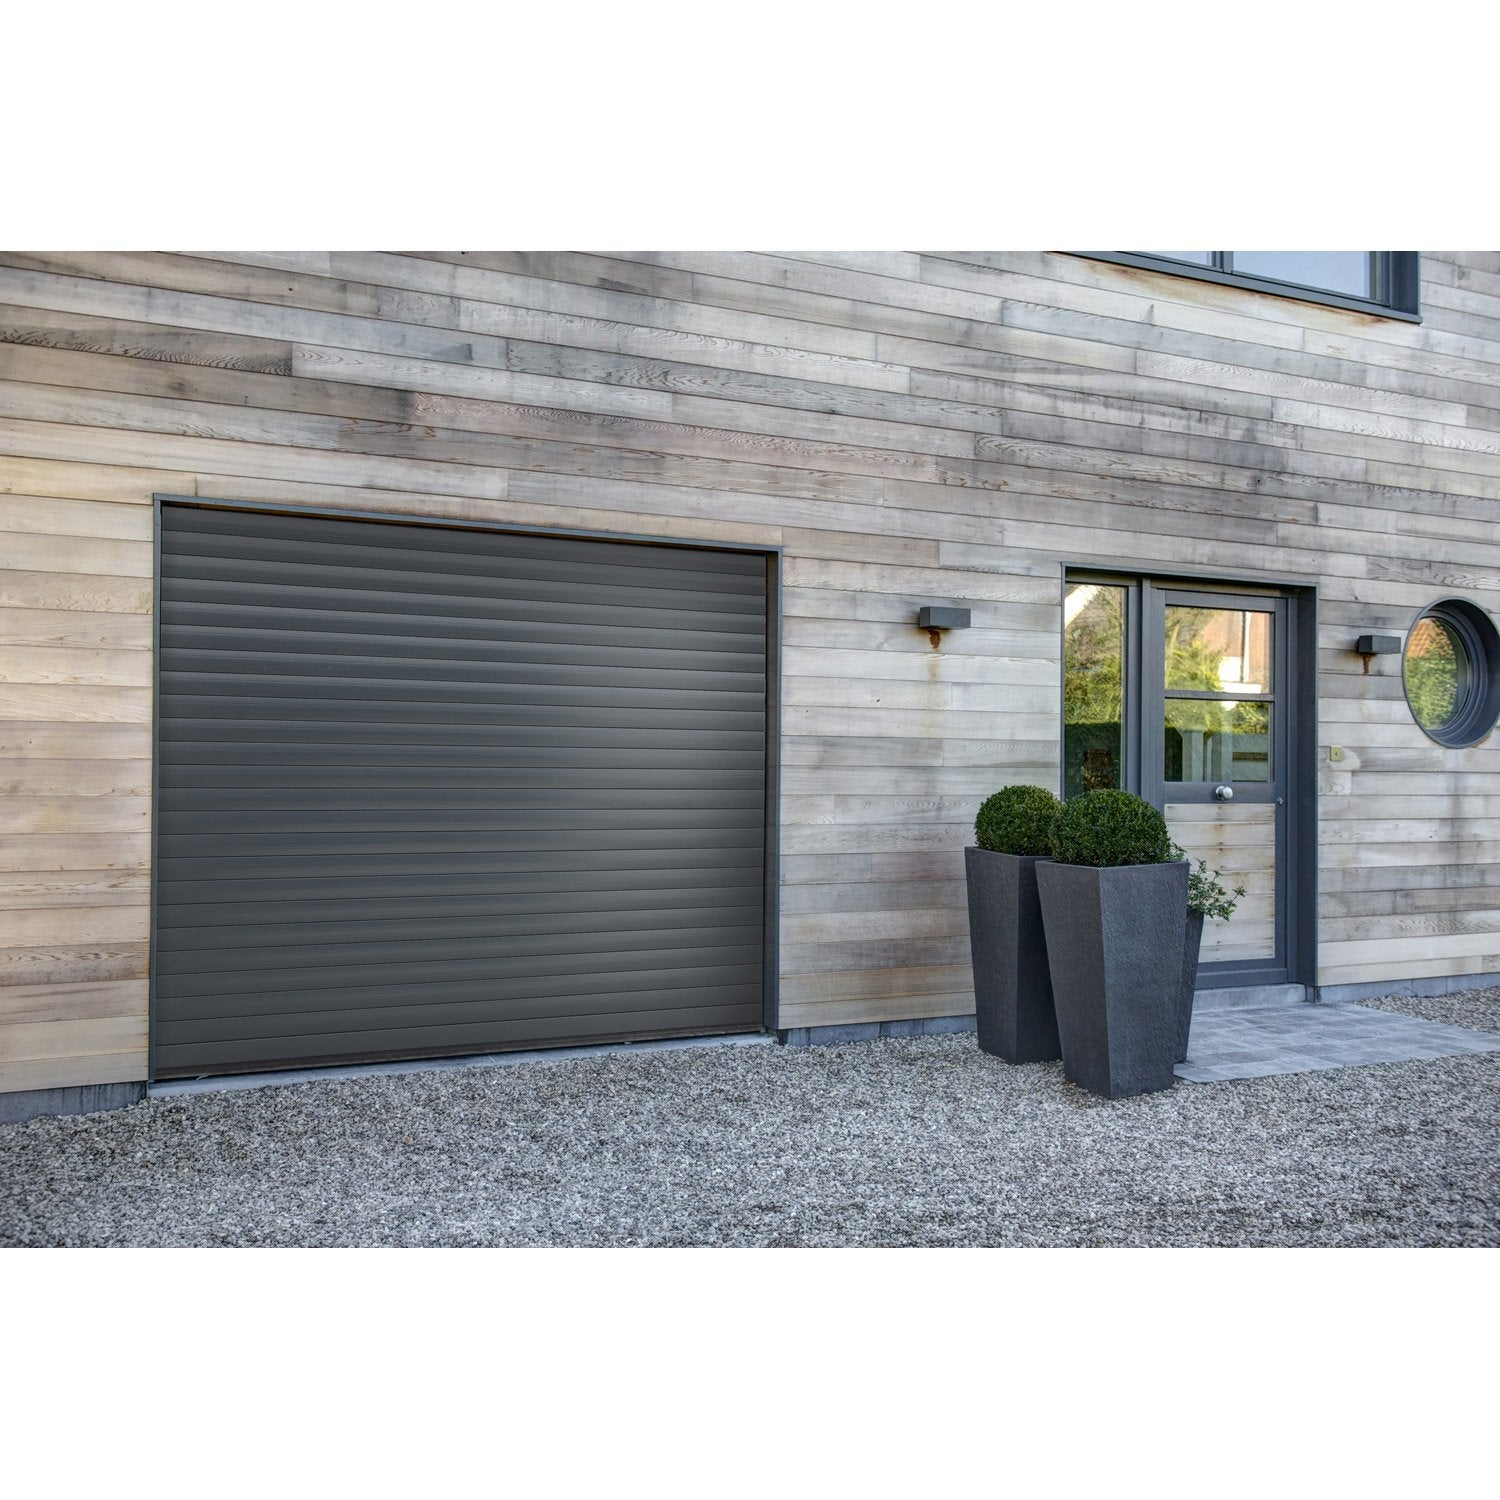 Porte de garage enroulement excellence x cm for Porte de service anthracite